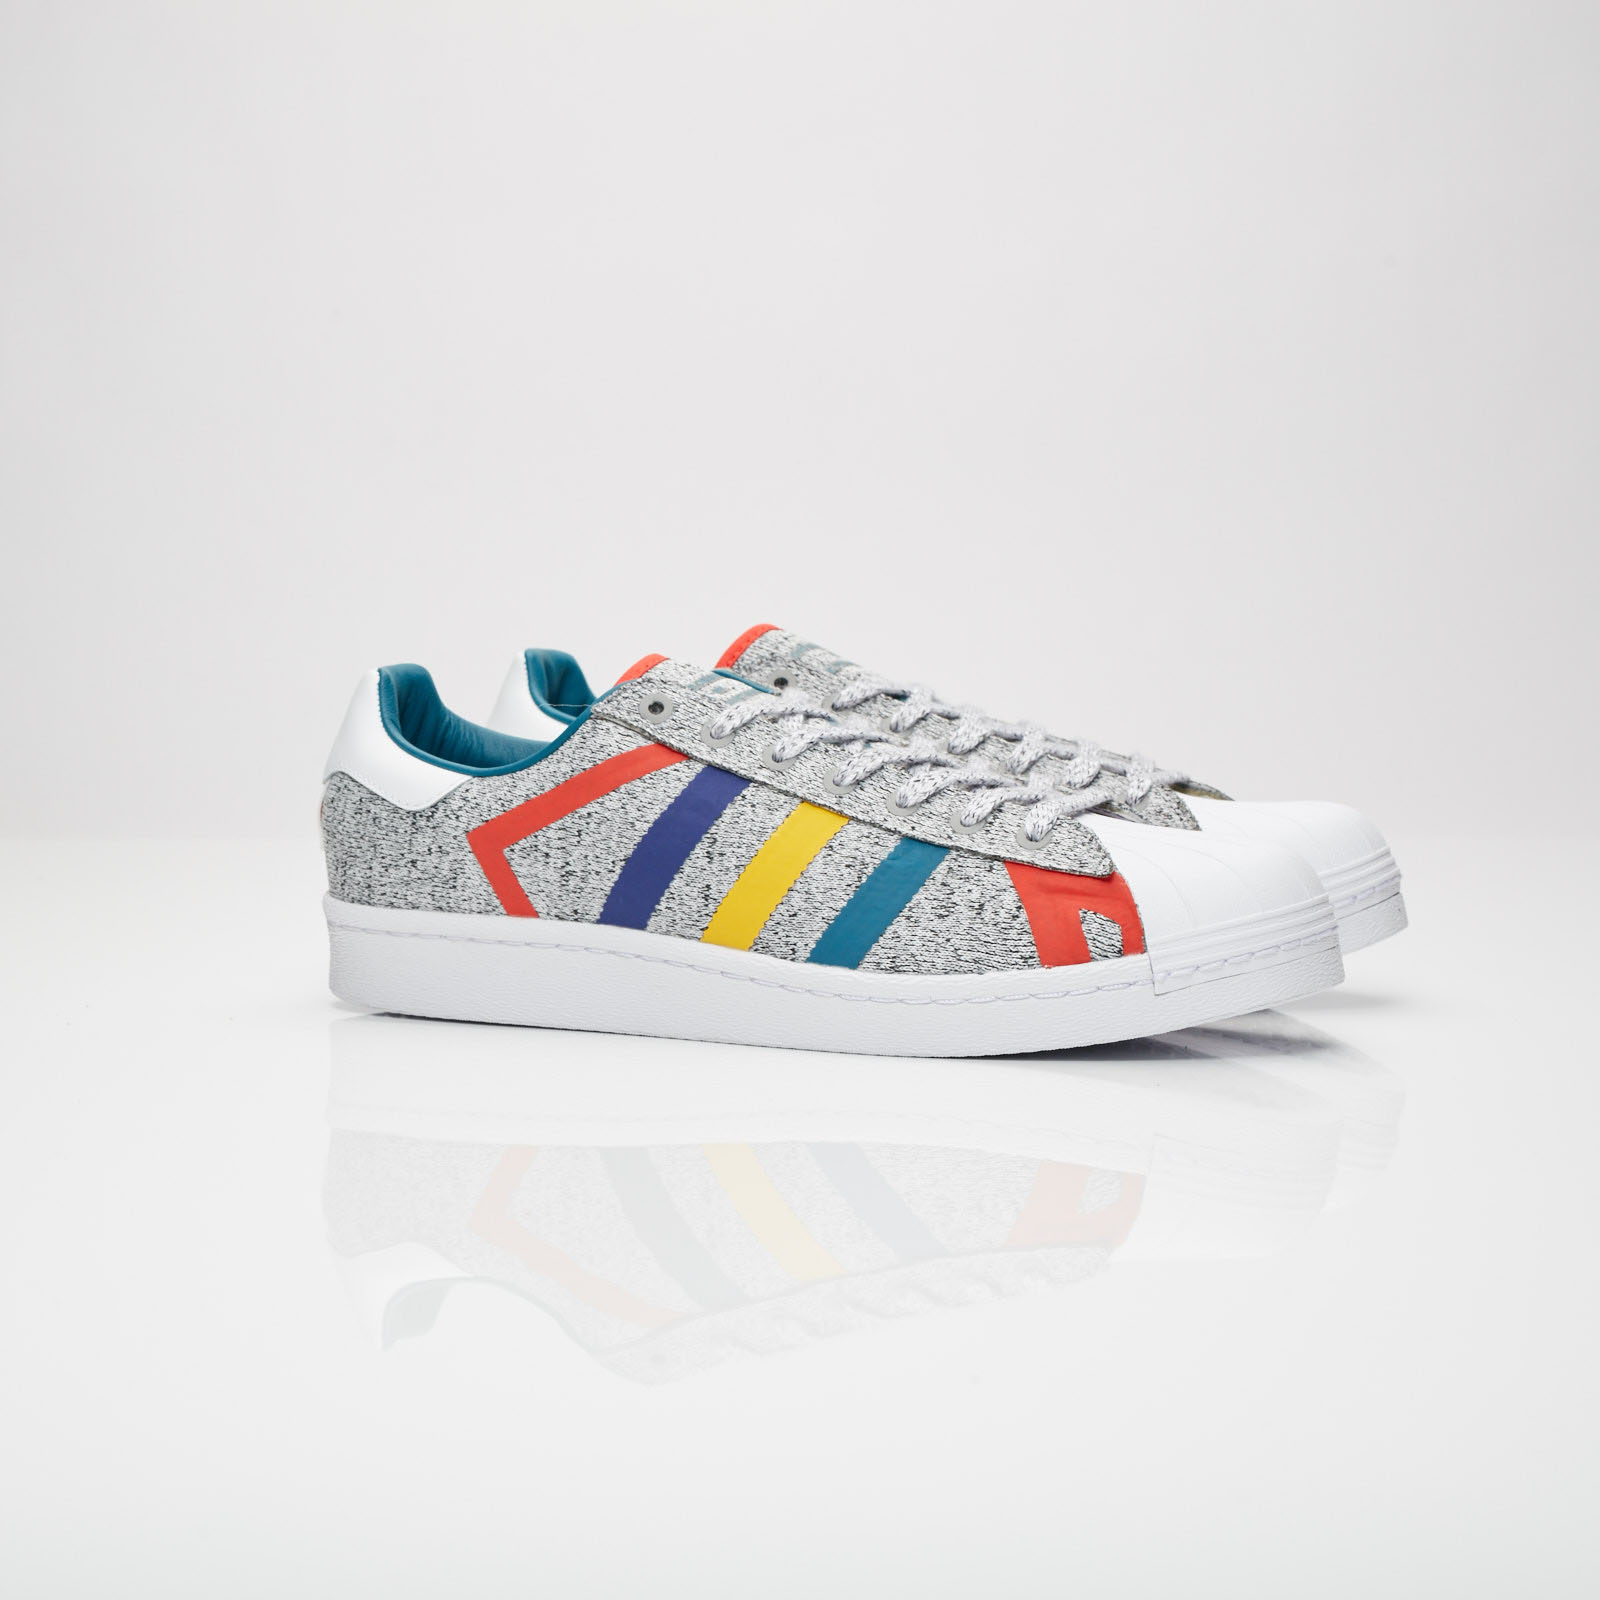 brand new 93d59 448be adidas Superstar by White Mountaineering - Aq0352 ...